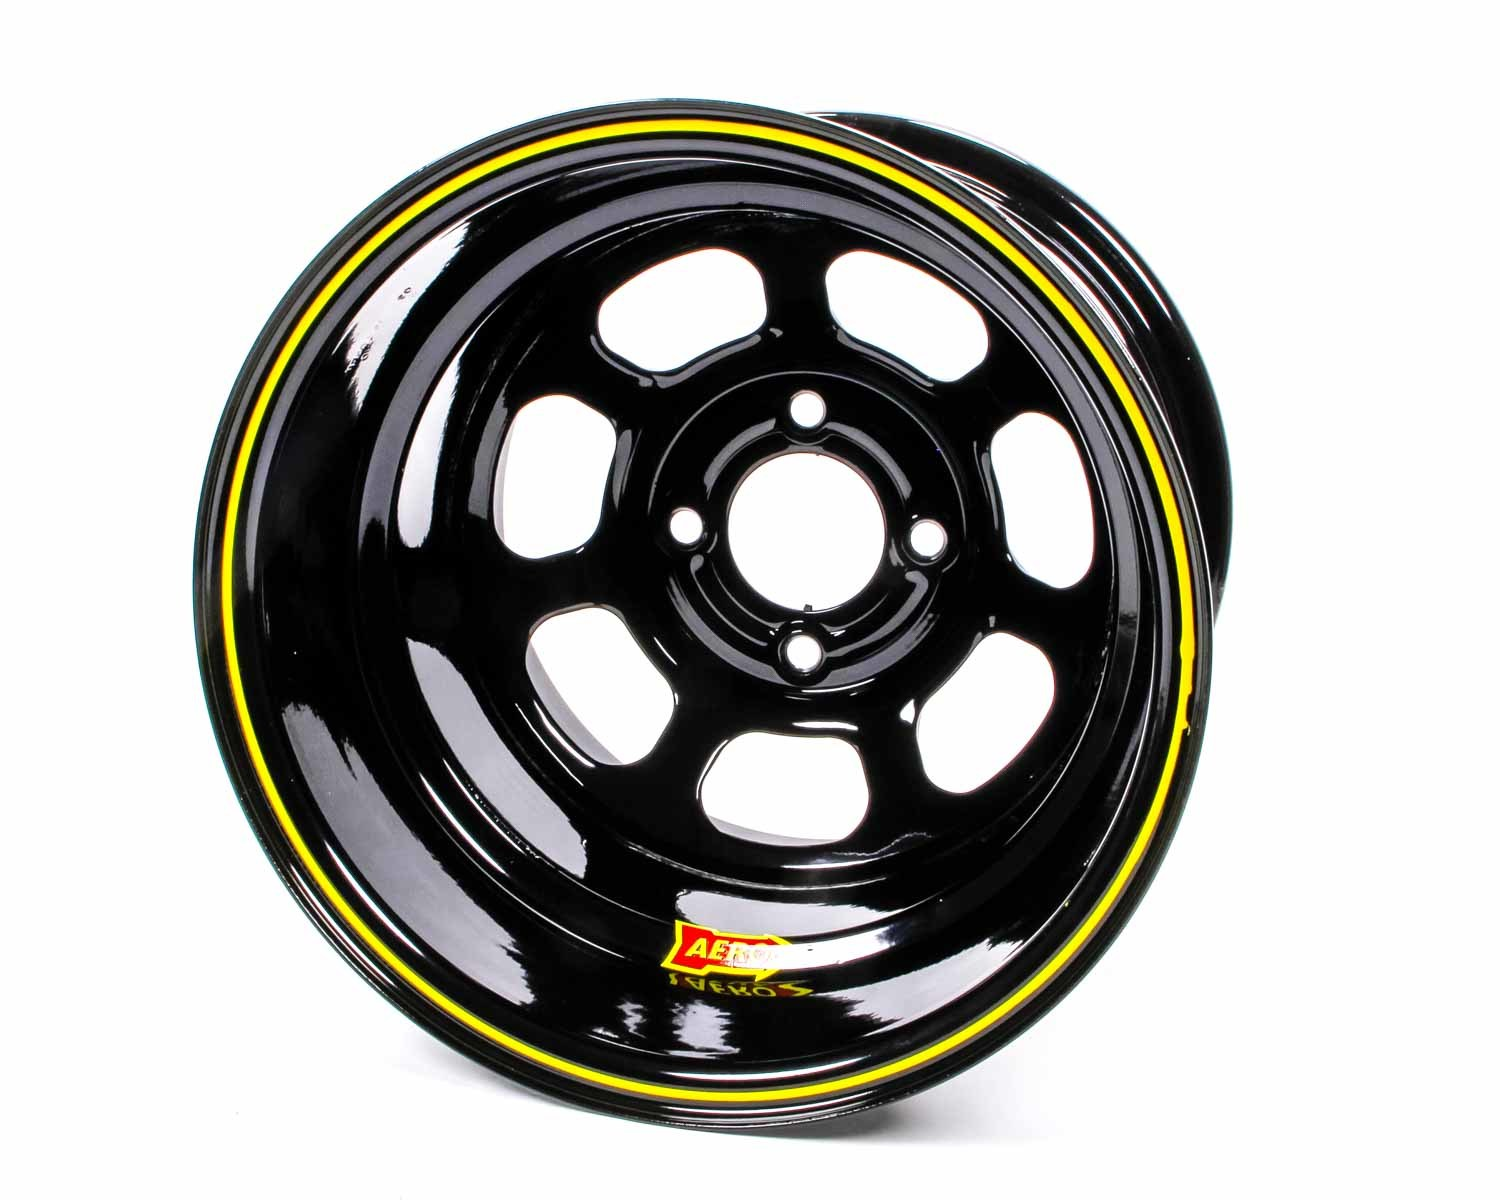 Aero Race 13x8 4in. 4.25 Black  Wheel